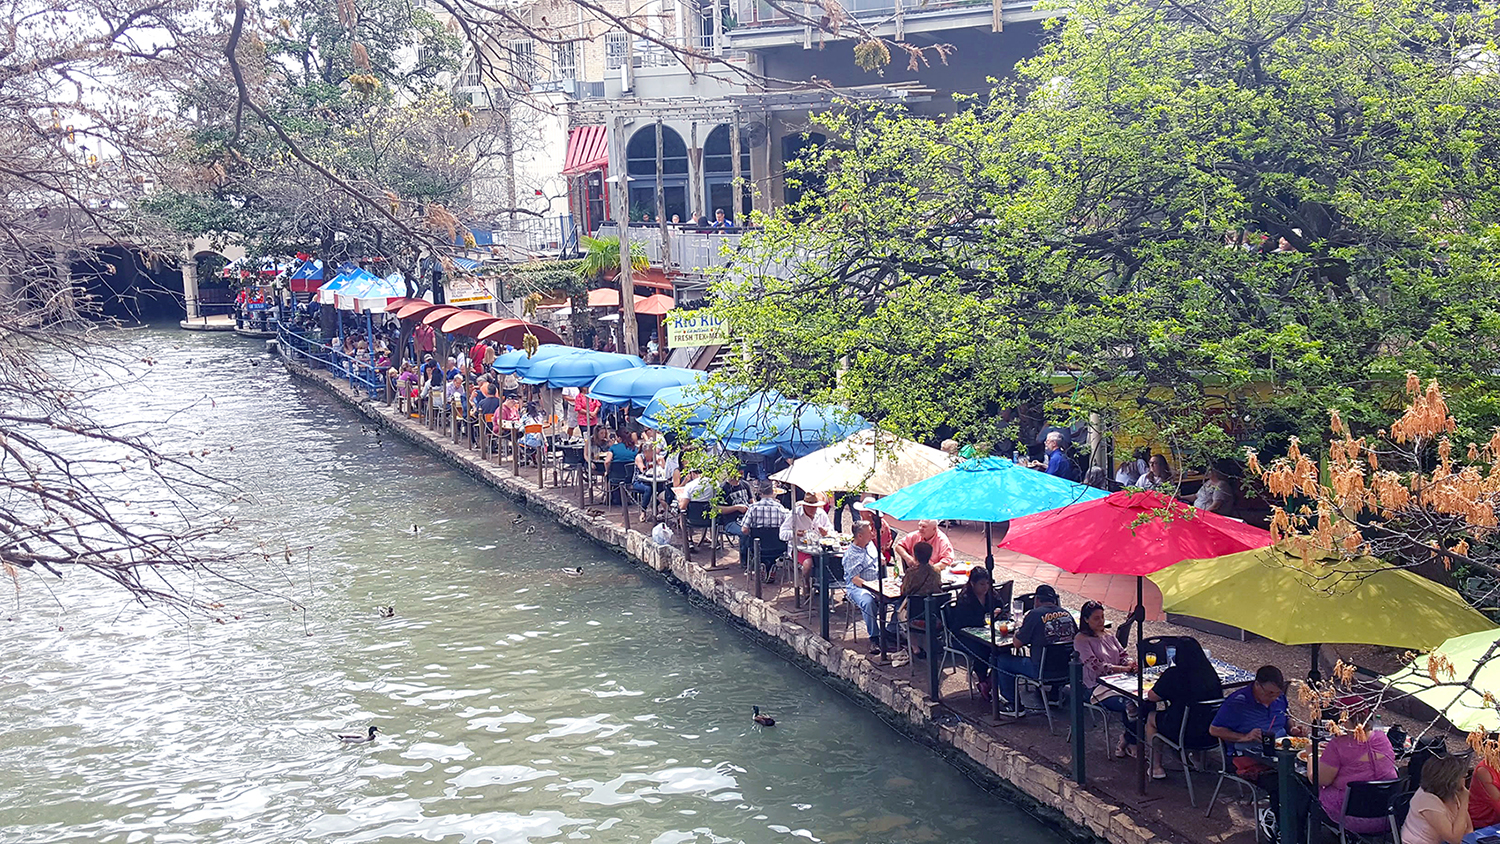 Top 4 Things To Do At The San Antonio River Walk